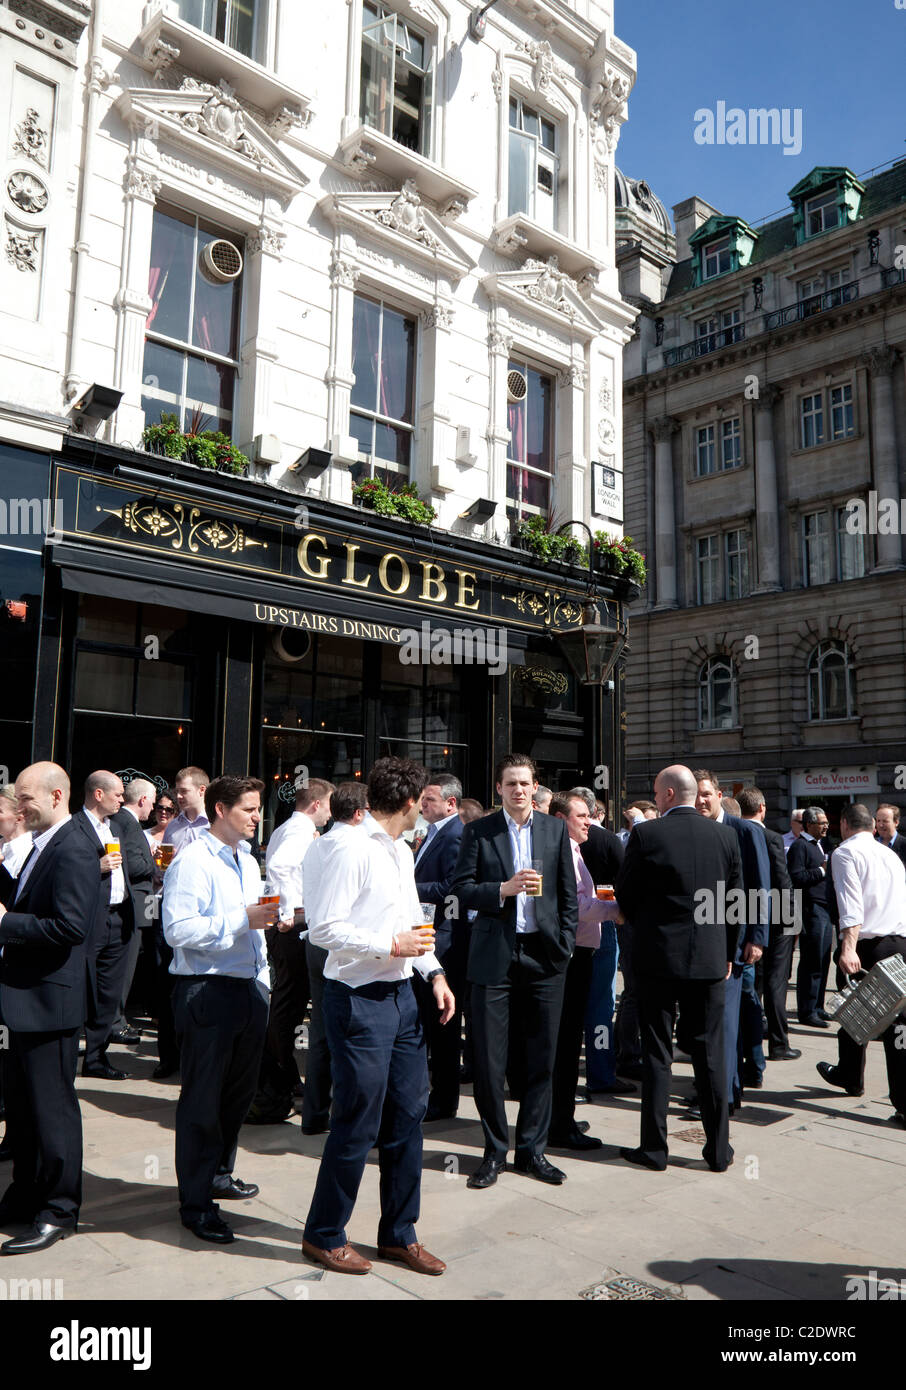 City workers drinking at lunchtime outside pub, London Stock Photo